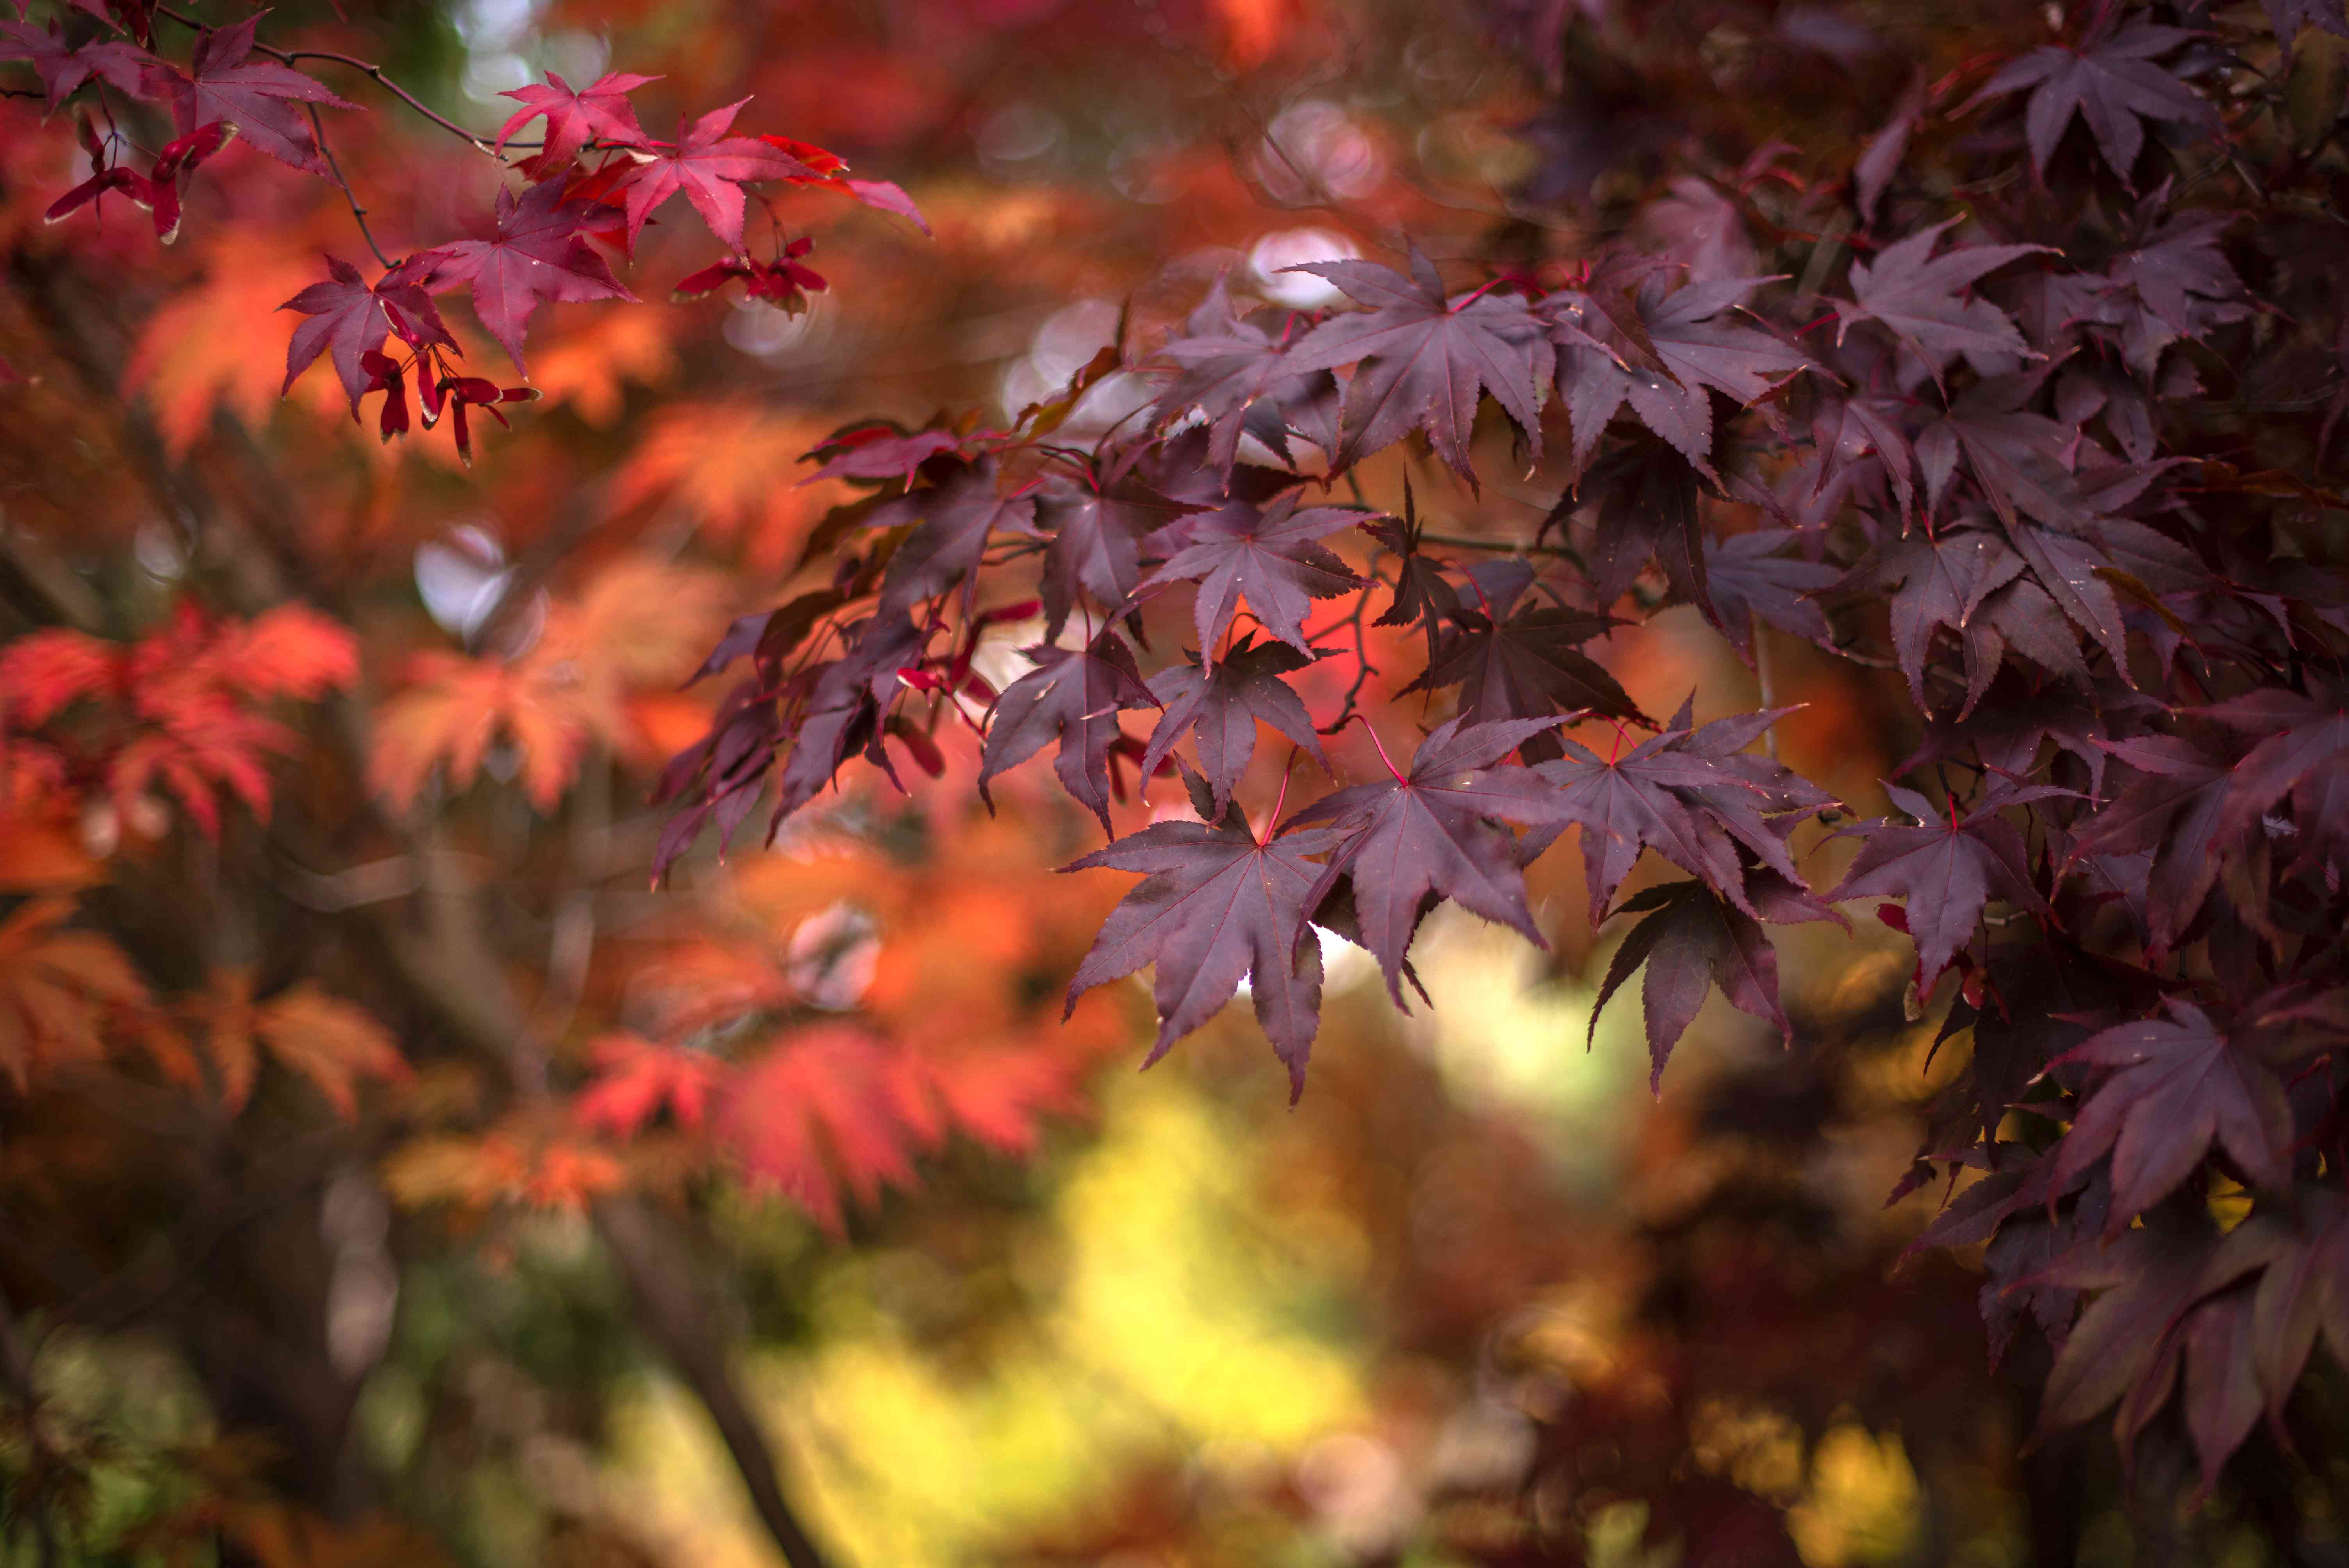 Bloodgood japanese maple tree with red and maroon leaves